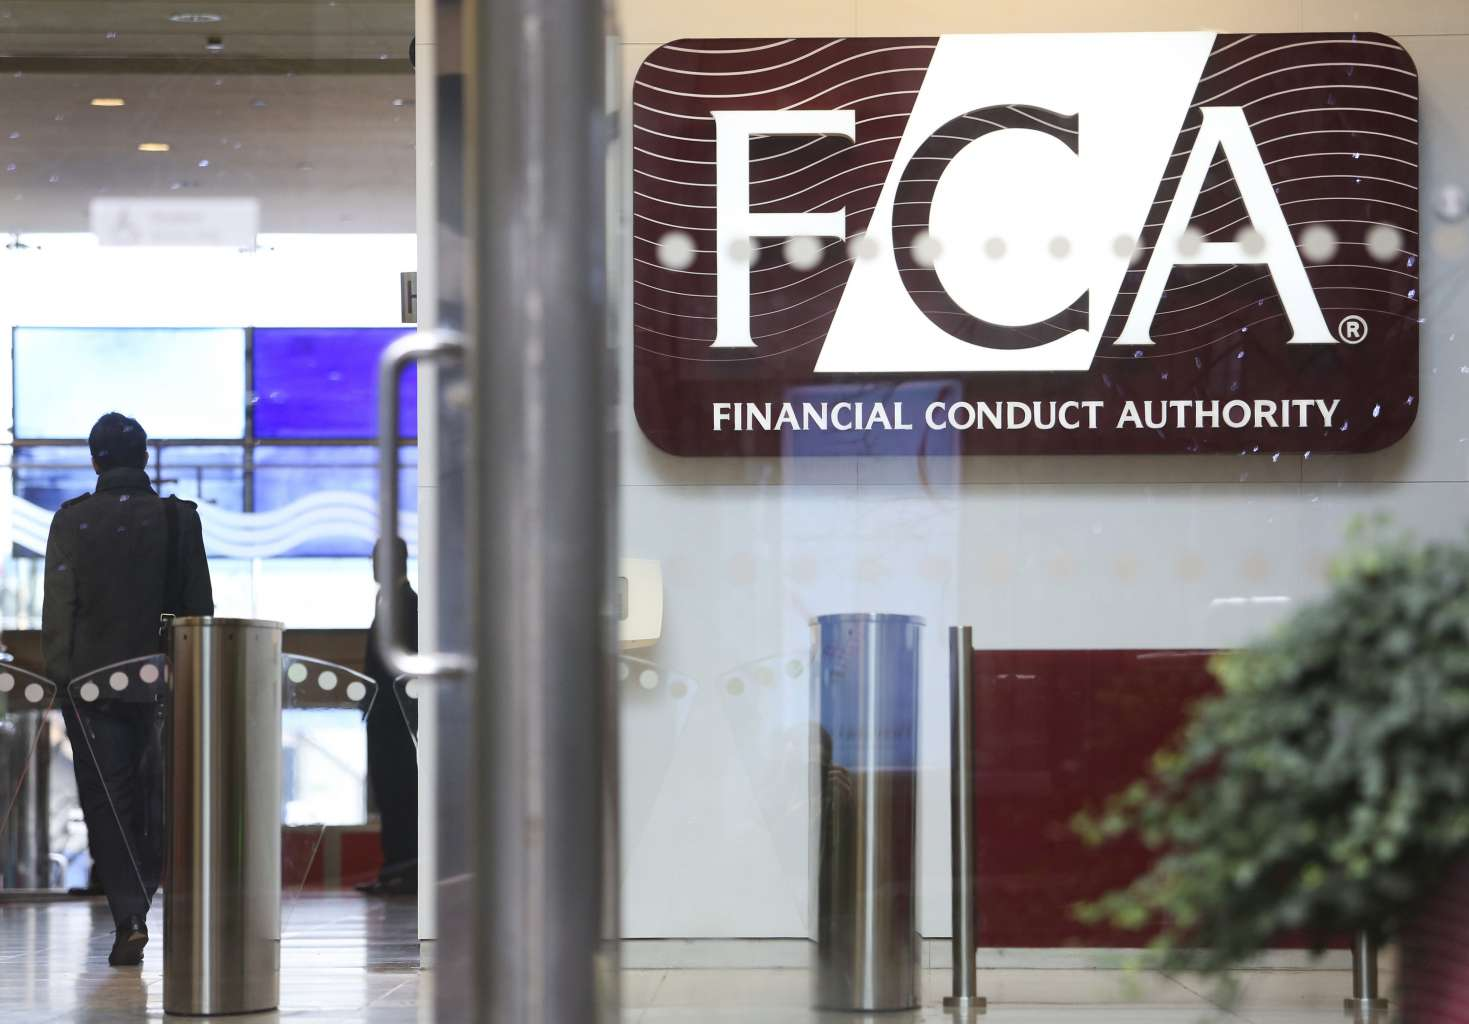 UK FCA derivatives ban signals disapproval of crypto as a whole, CoinShares exec says